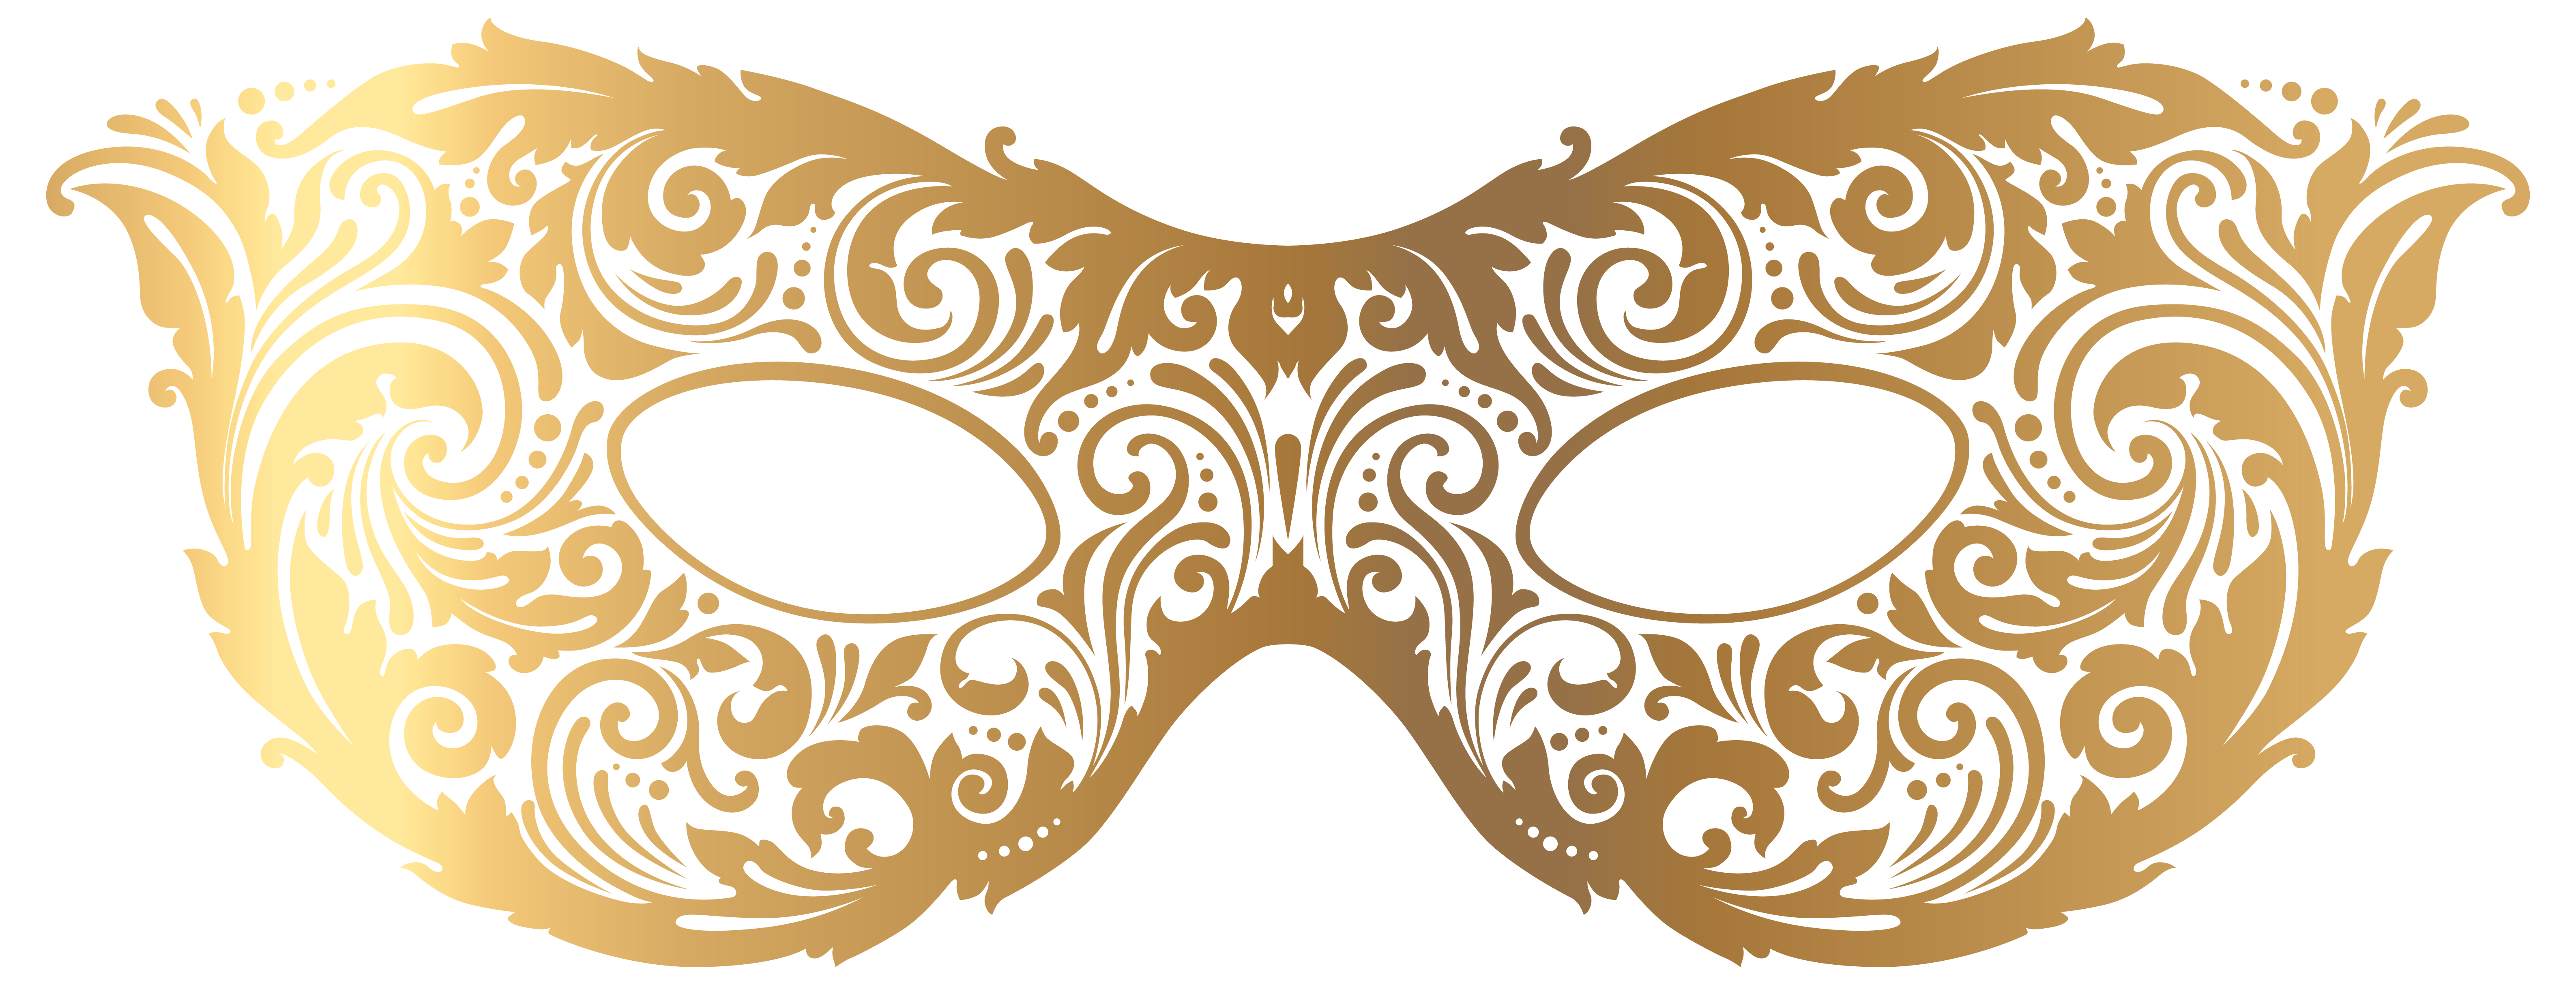 collection of gold. Masquerade mask clipart png picture royalty free stock